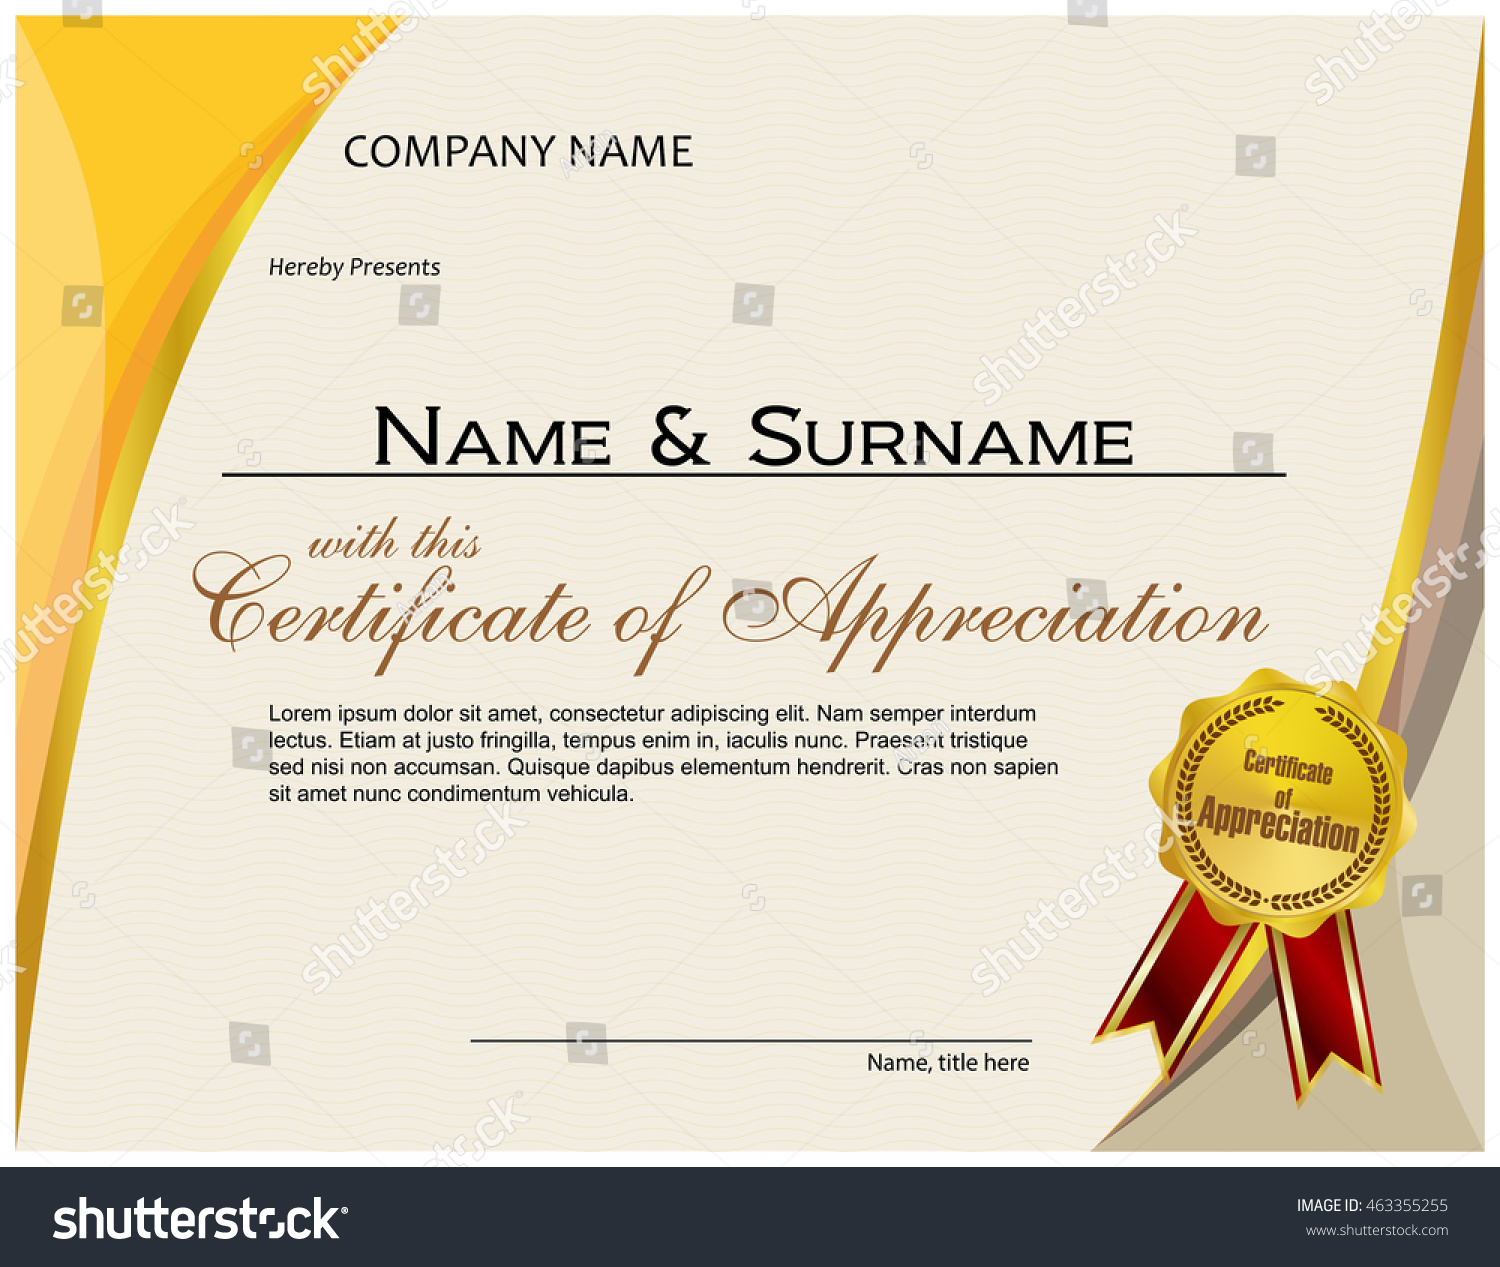 Certificate appreciation medal ribbon stock vector 463355255 certificate of appreciation with medal and ribbon yadclub Images